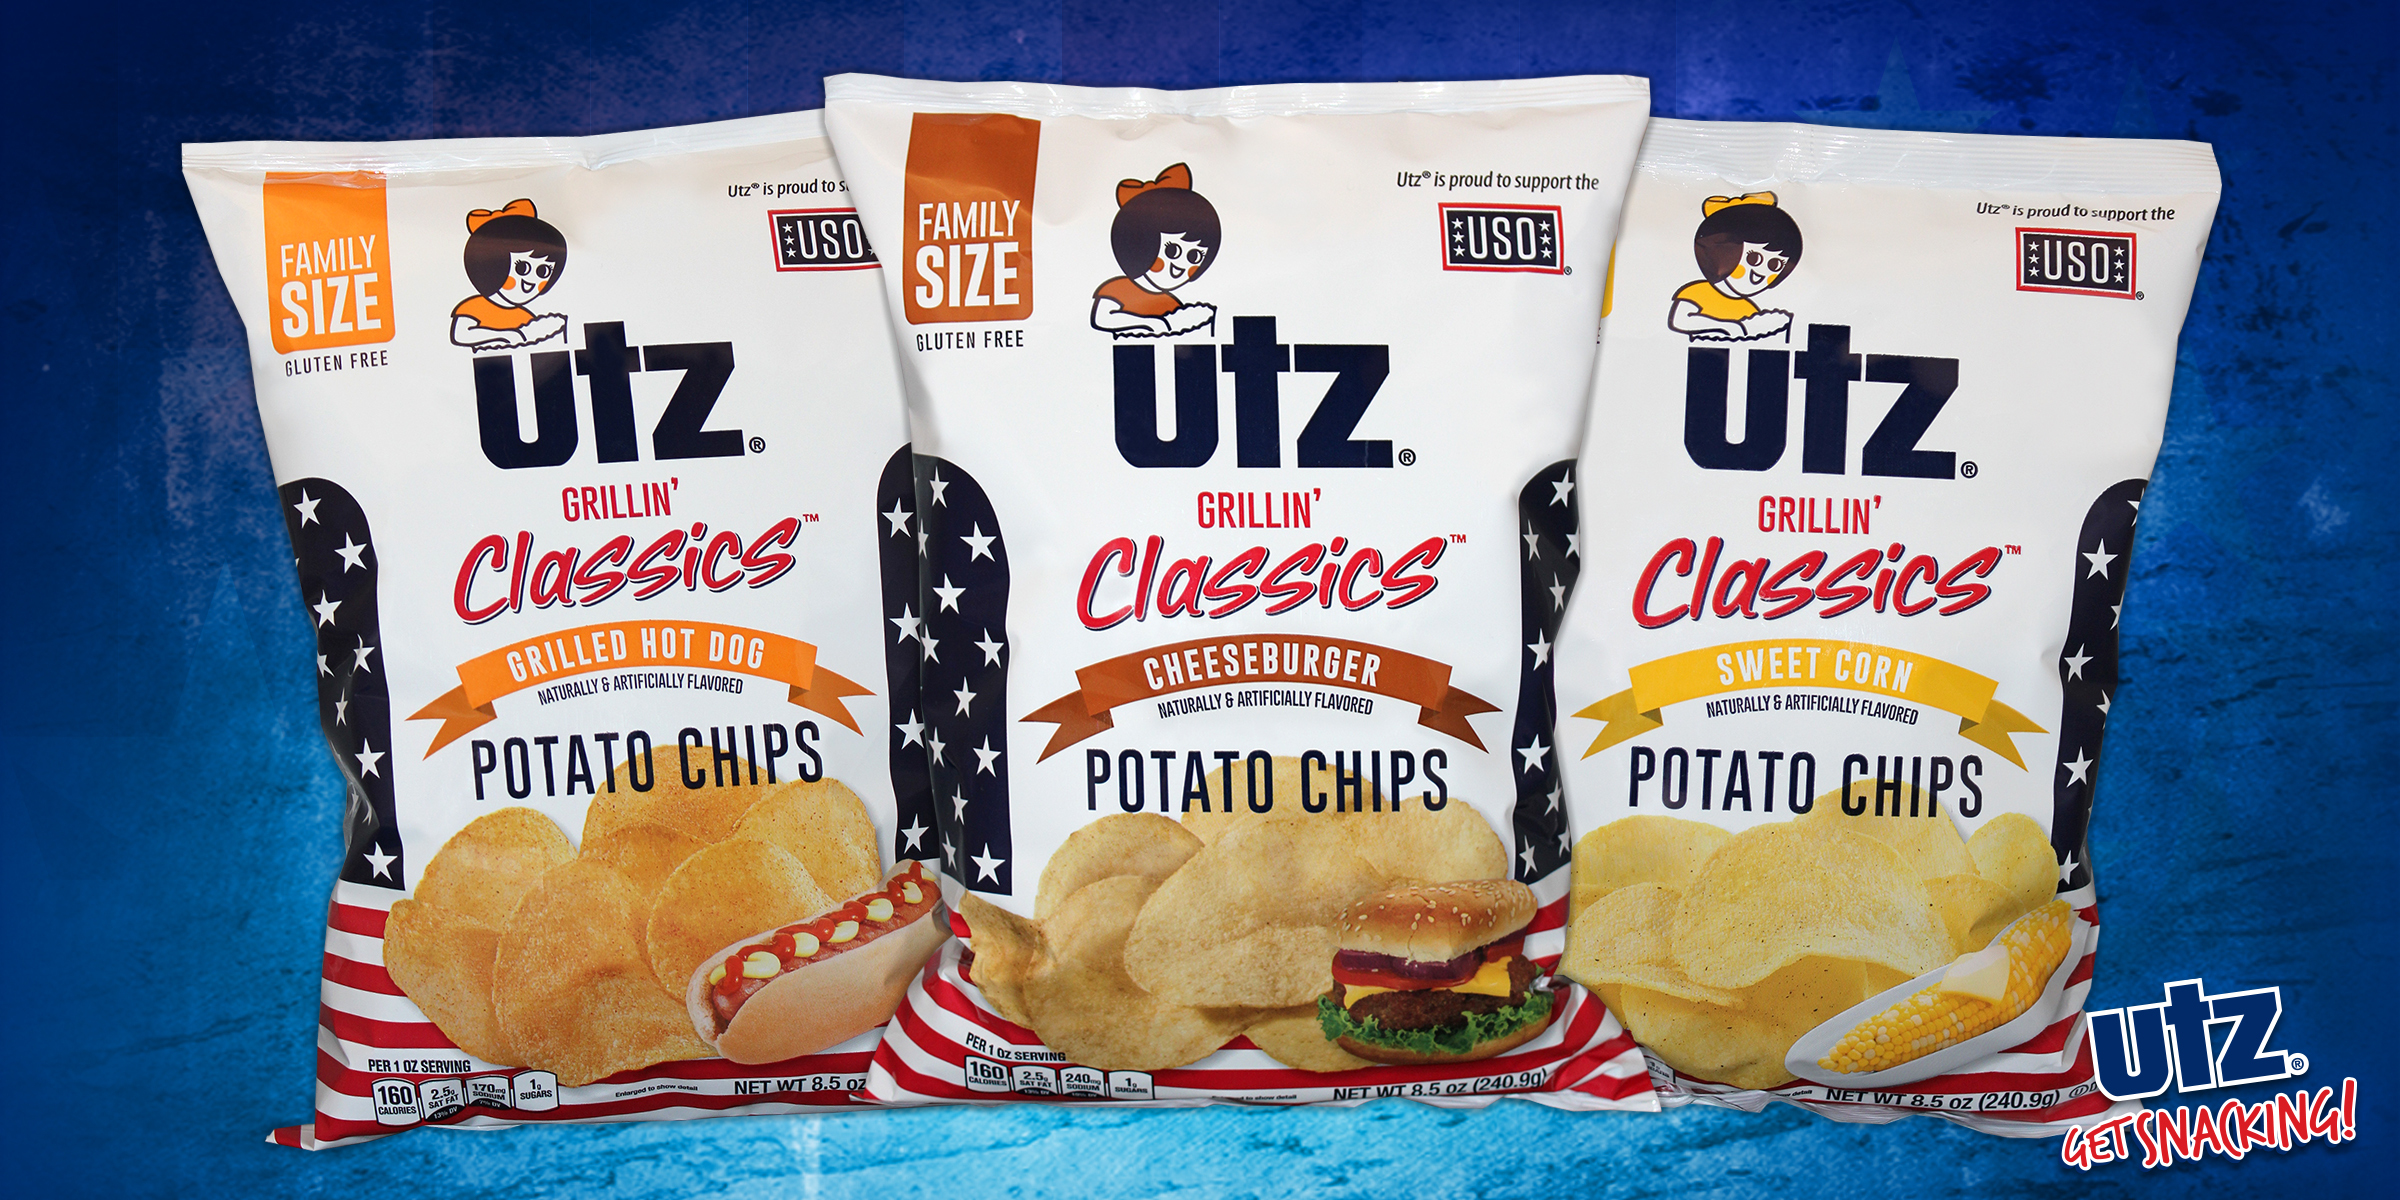 New Utz® Grillin' Classics™ Potato Chips with flavors that include Cheeseburger, Sweet Corn, and Grilled Hot Dog. (Photo: Business Wire)